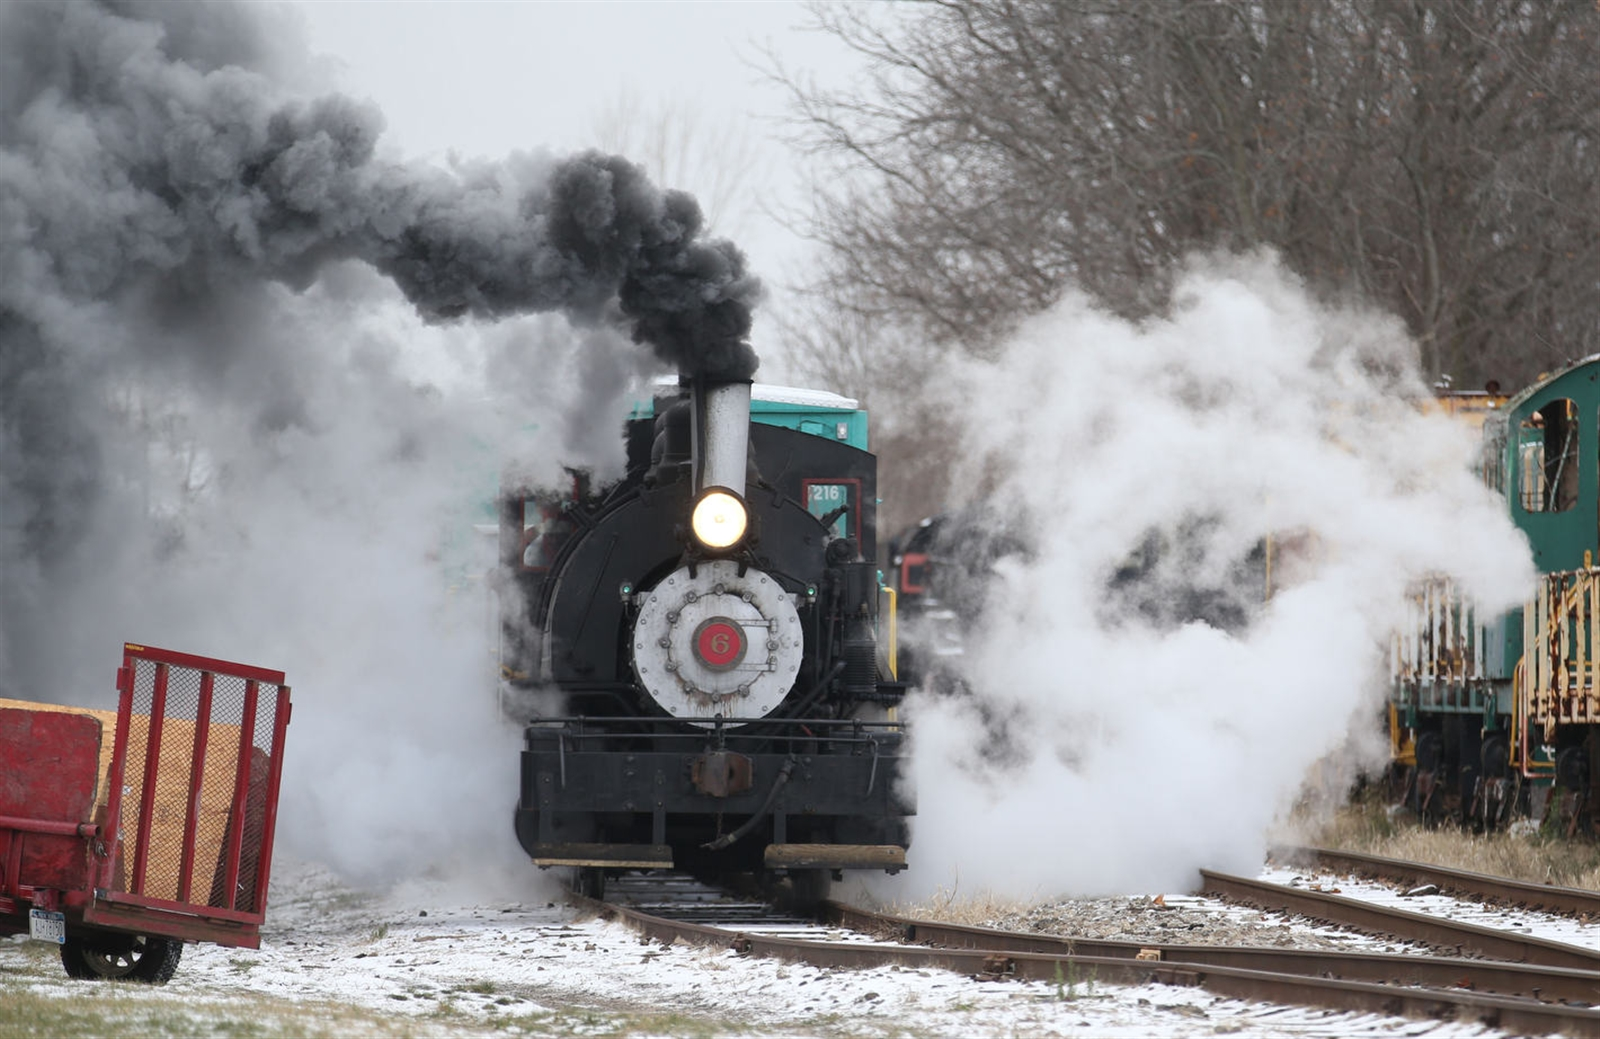 This is the first year that train rides are being given at its Christmas weekend event.